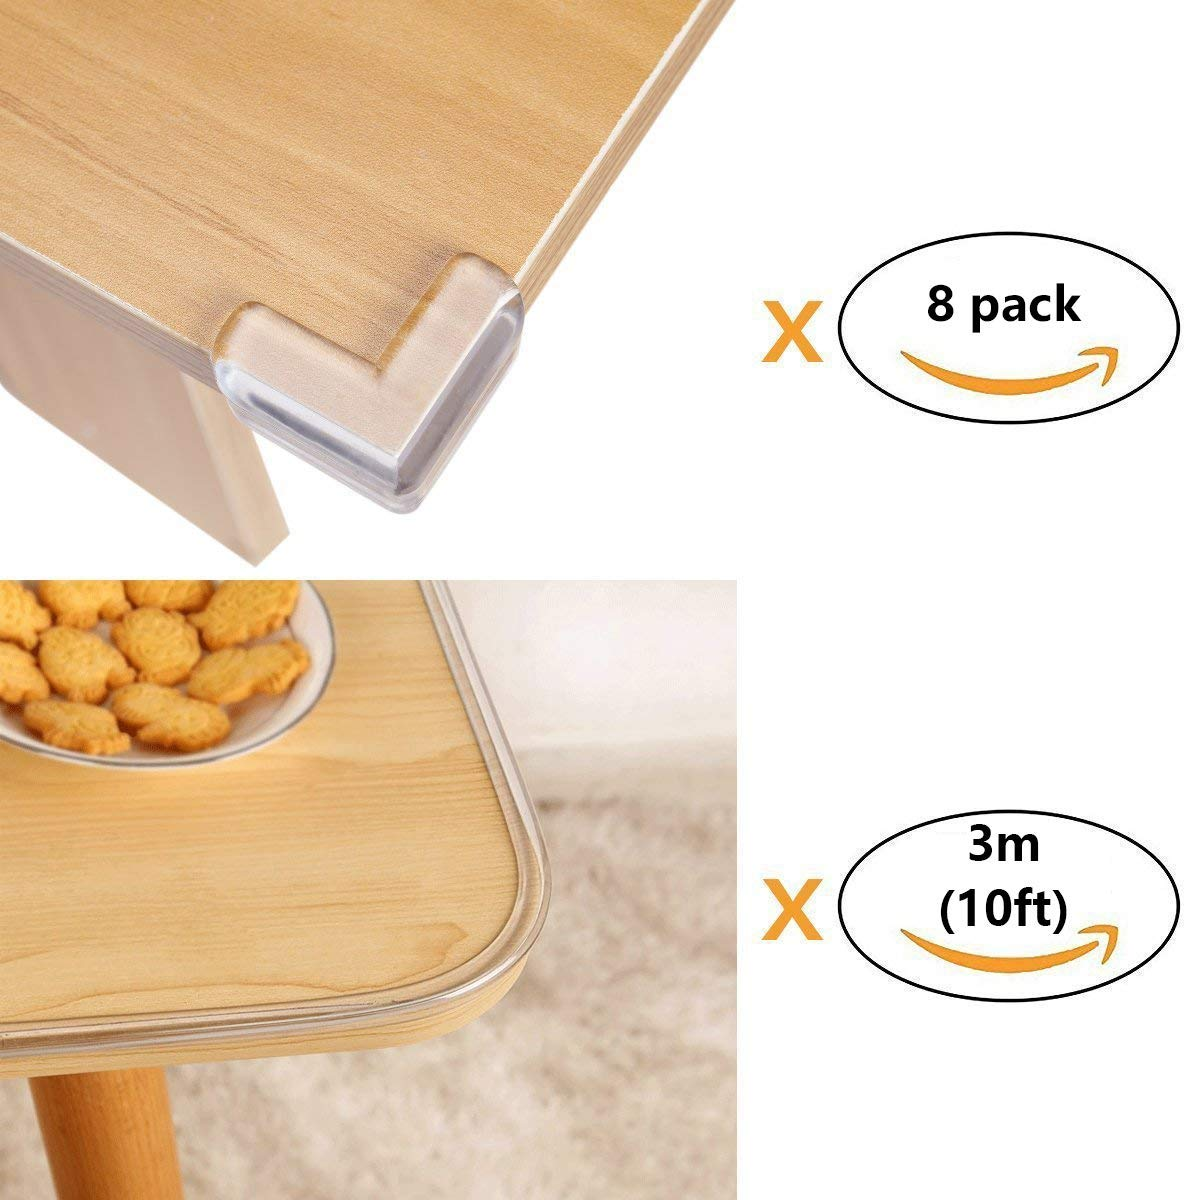 Wemk New Transparent Table Edge Furniture Corner Protectors 1 Rolls 8 Corner Protectors 10ft Widen /& Thicken Baby Proofing Edge Safety Bumpers Strip Safety for Child 10ft per roll